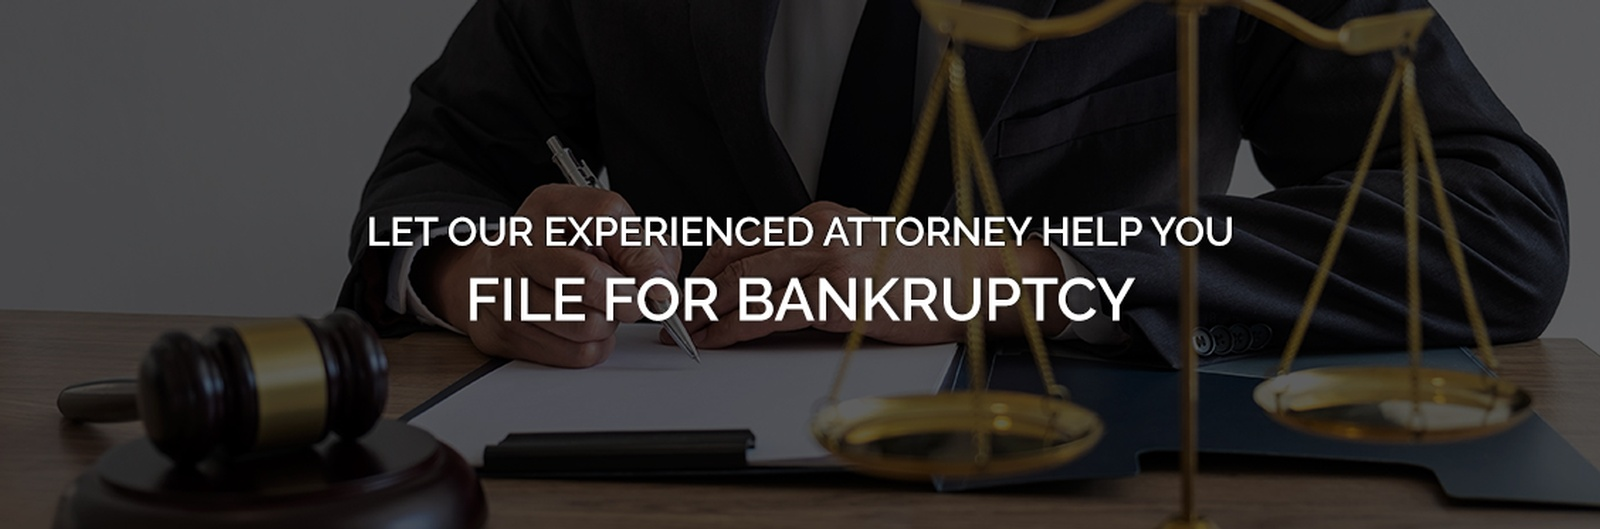 Bankruptcy Services St Cloud Minnesota